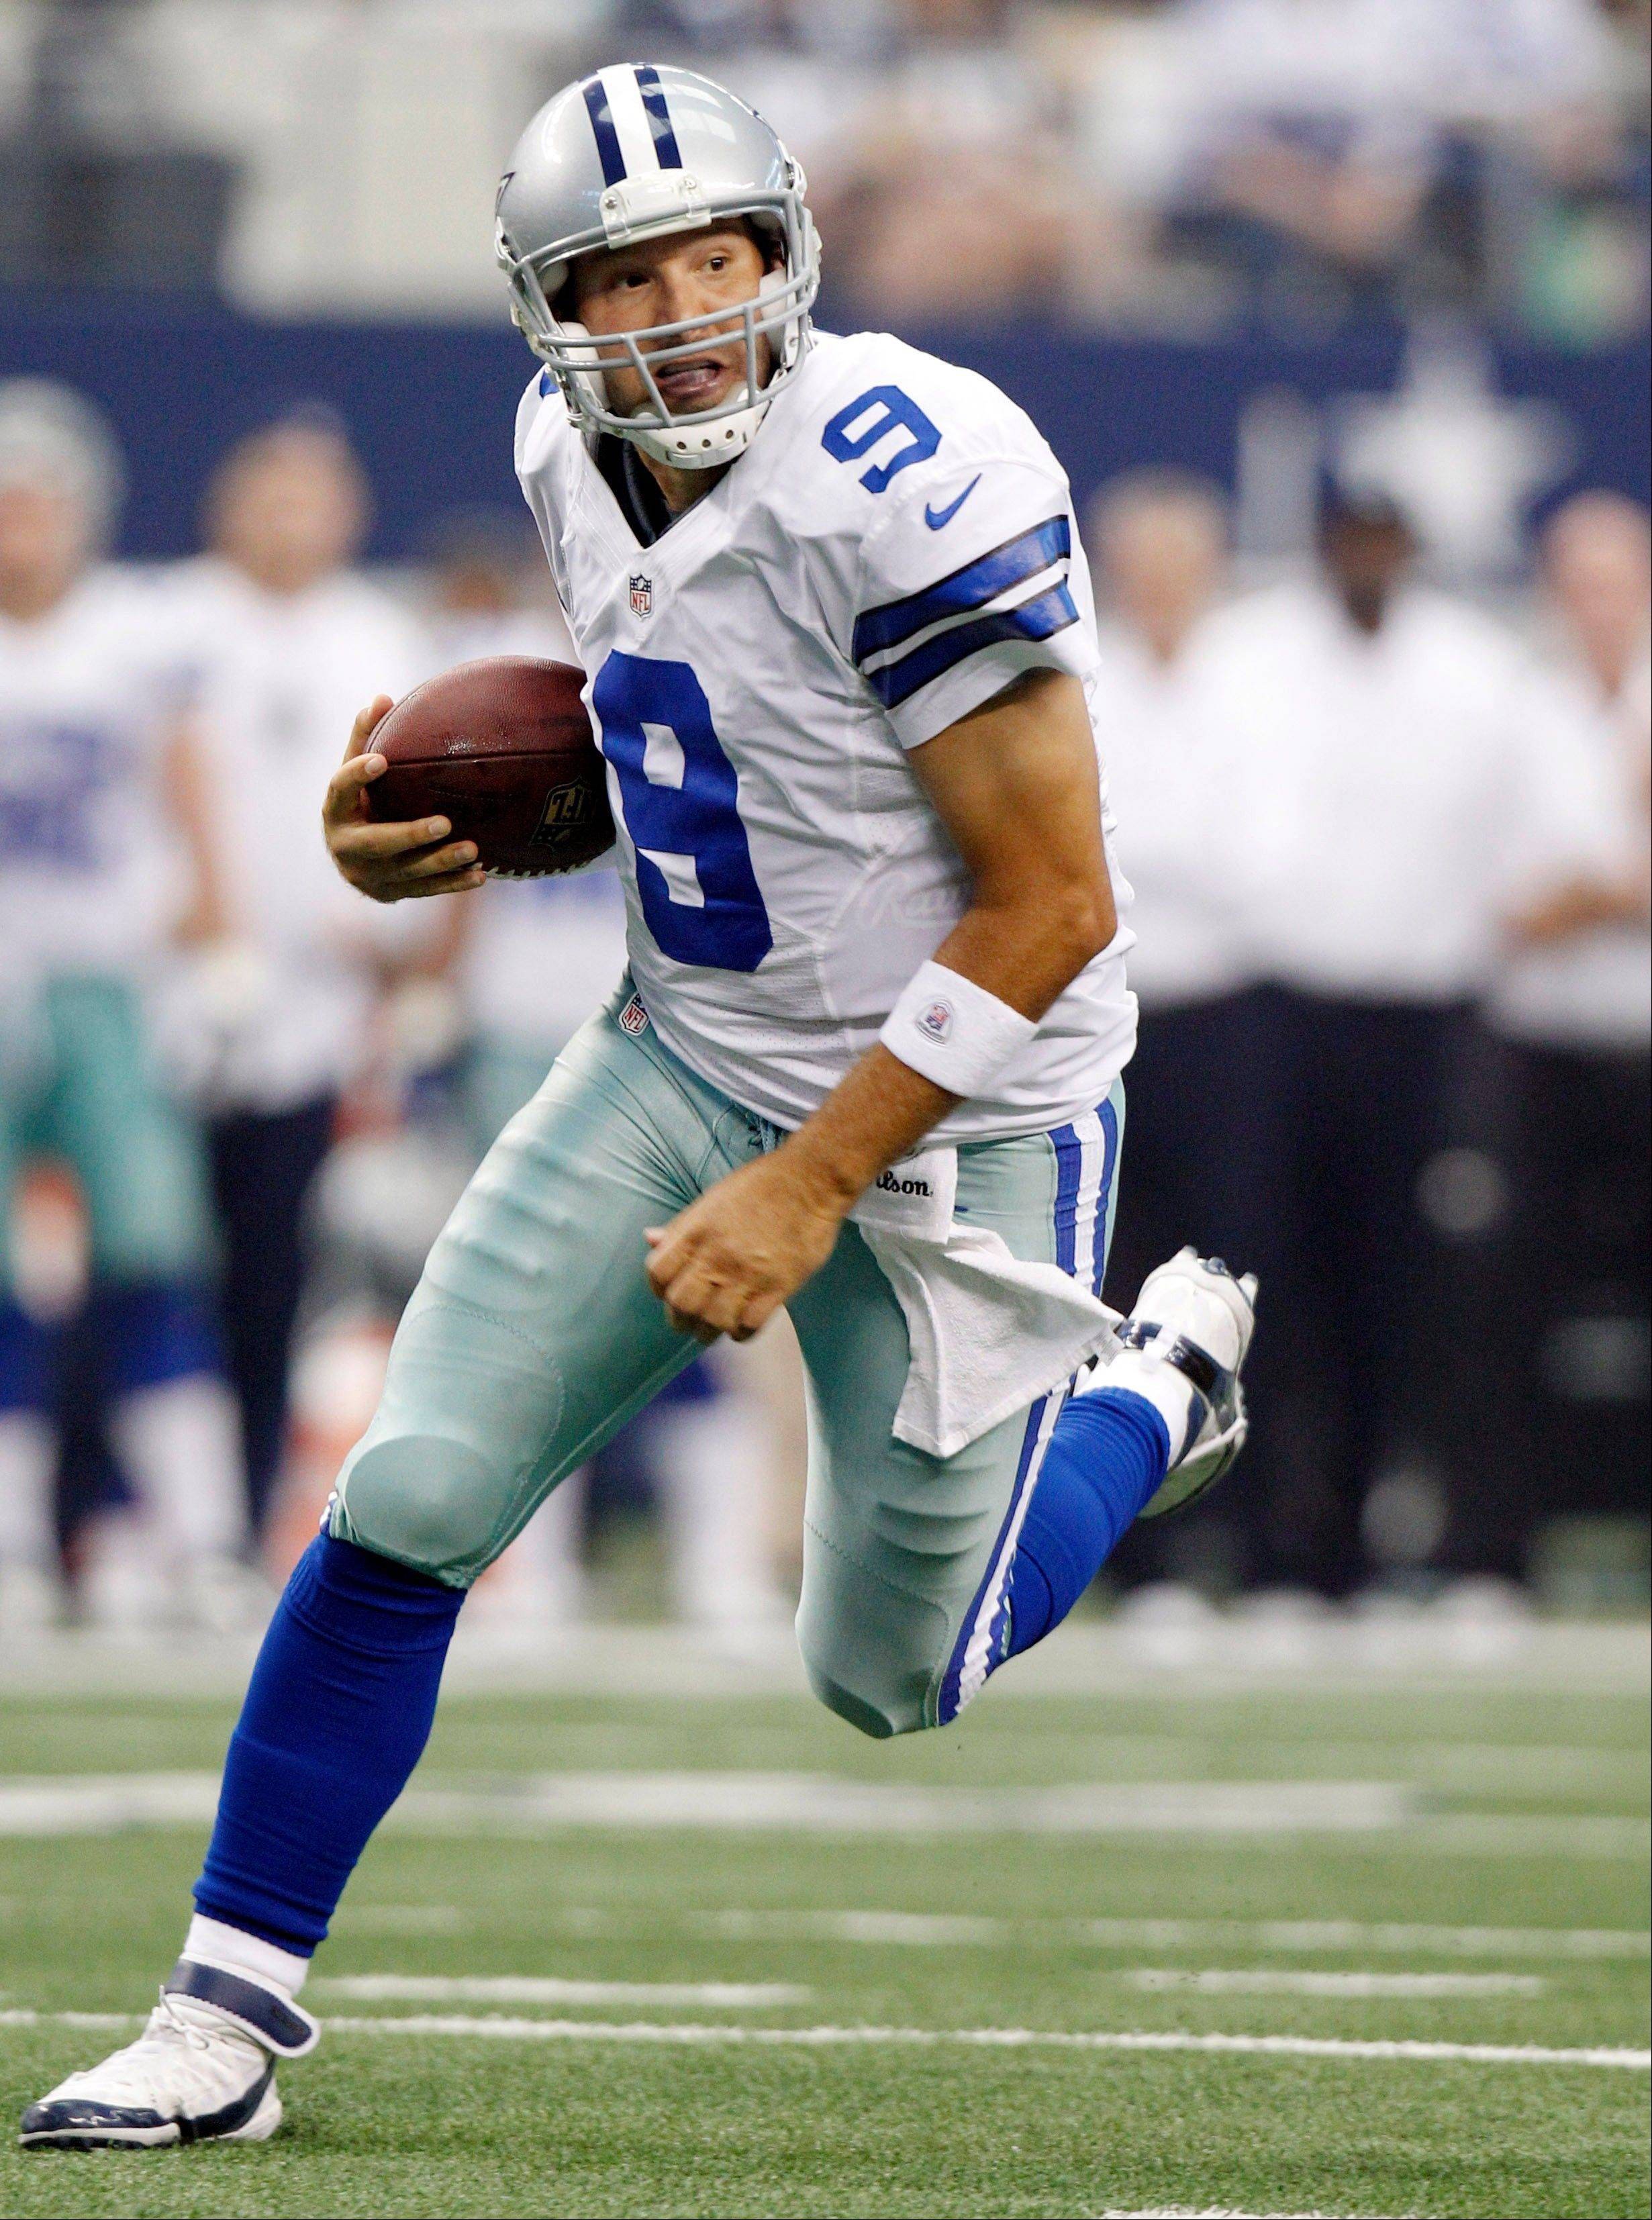 If he had to choose between Dallas Cowboys quarterback Tony Romo or Bears quarterback Jay Cutler, Mike North says he'd pick Romo. The two franchises play next Monday in Dallas.